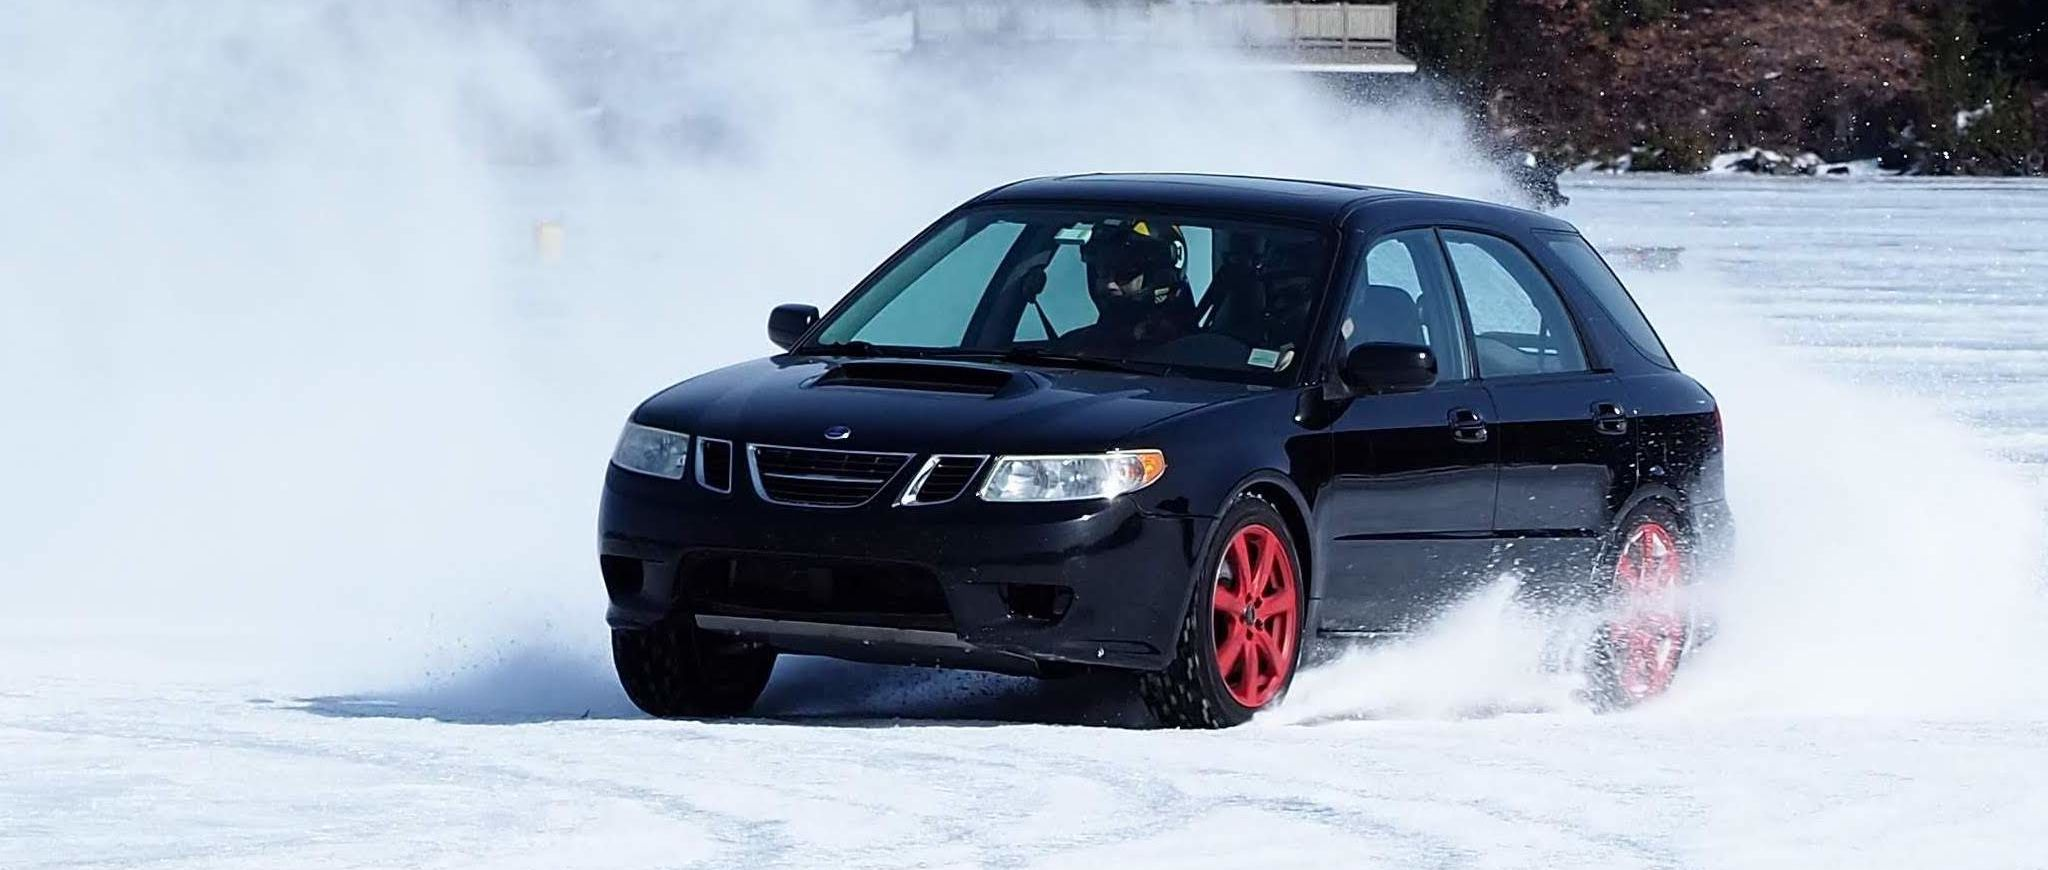 A Saab 9-2x Aero on the ice, which makes me sad about my now-deceased 9-2x—Ed.